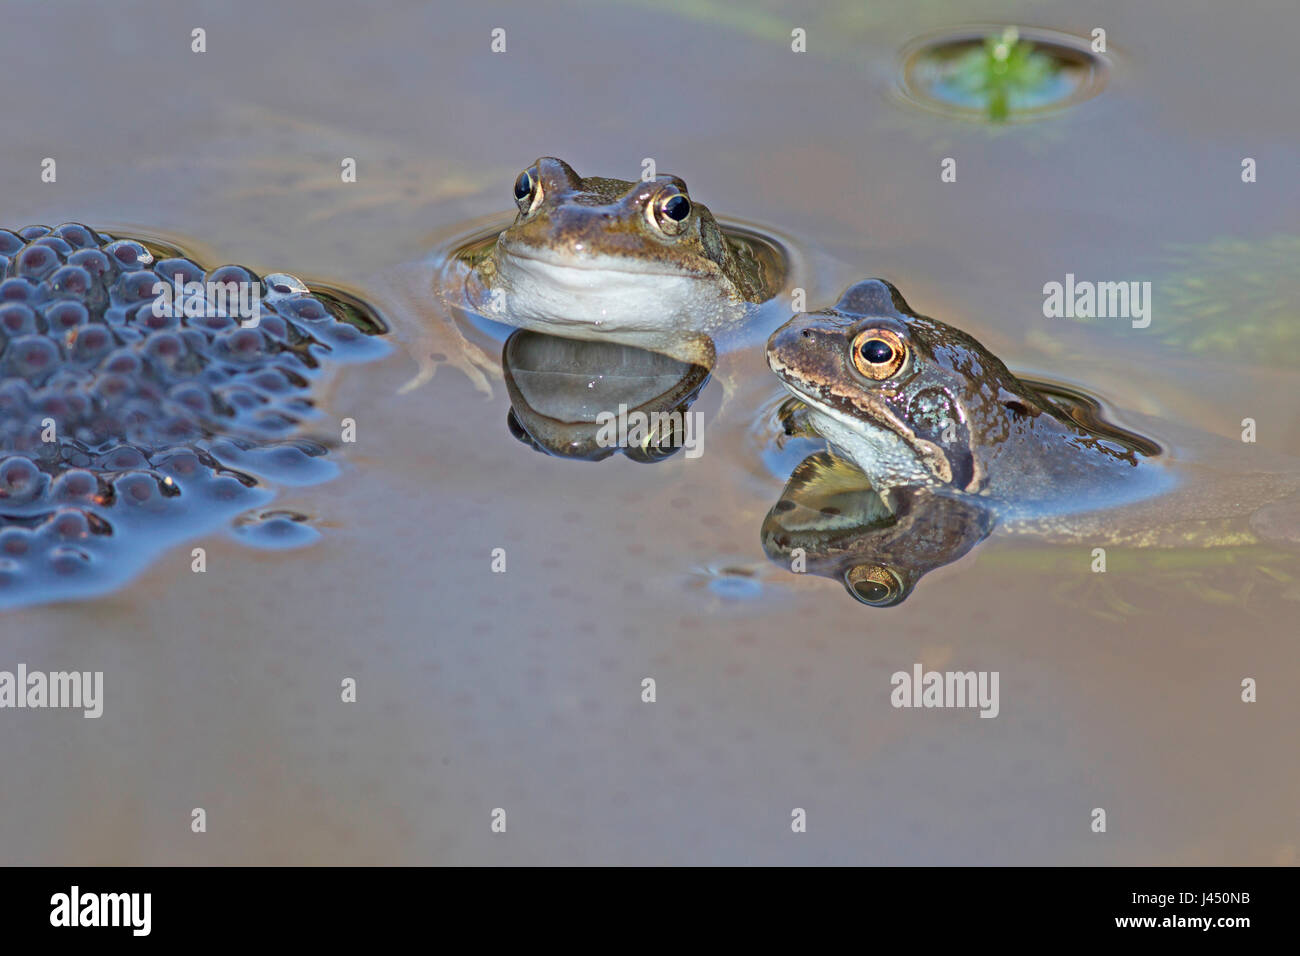 Duo common frogs near frog spawn - Stock Image